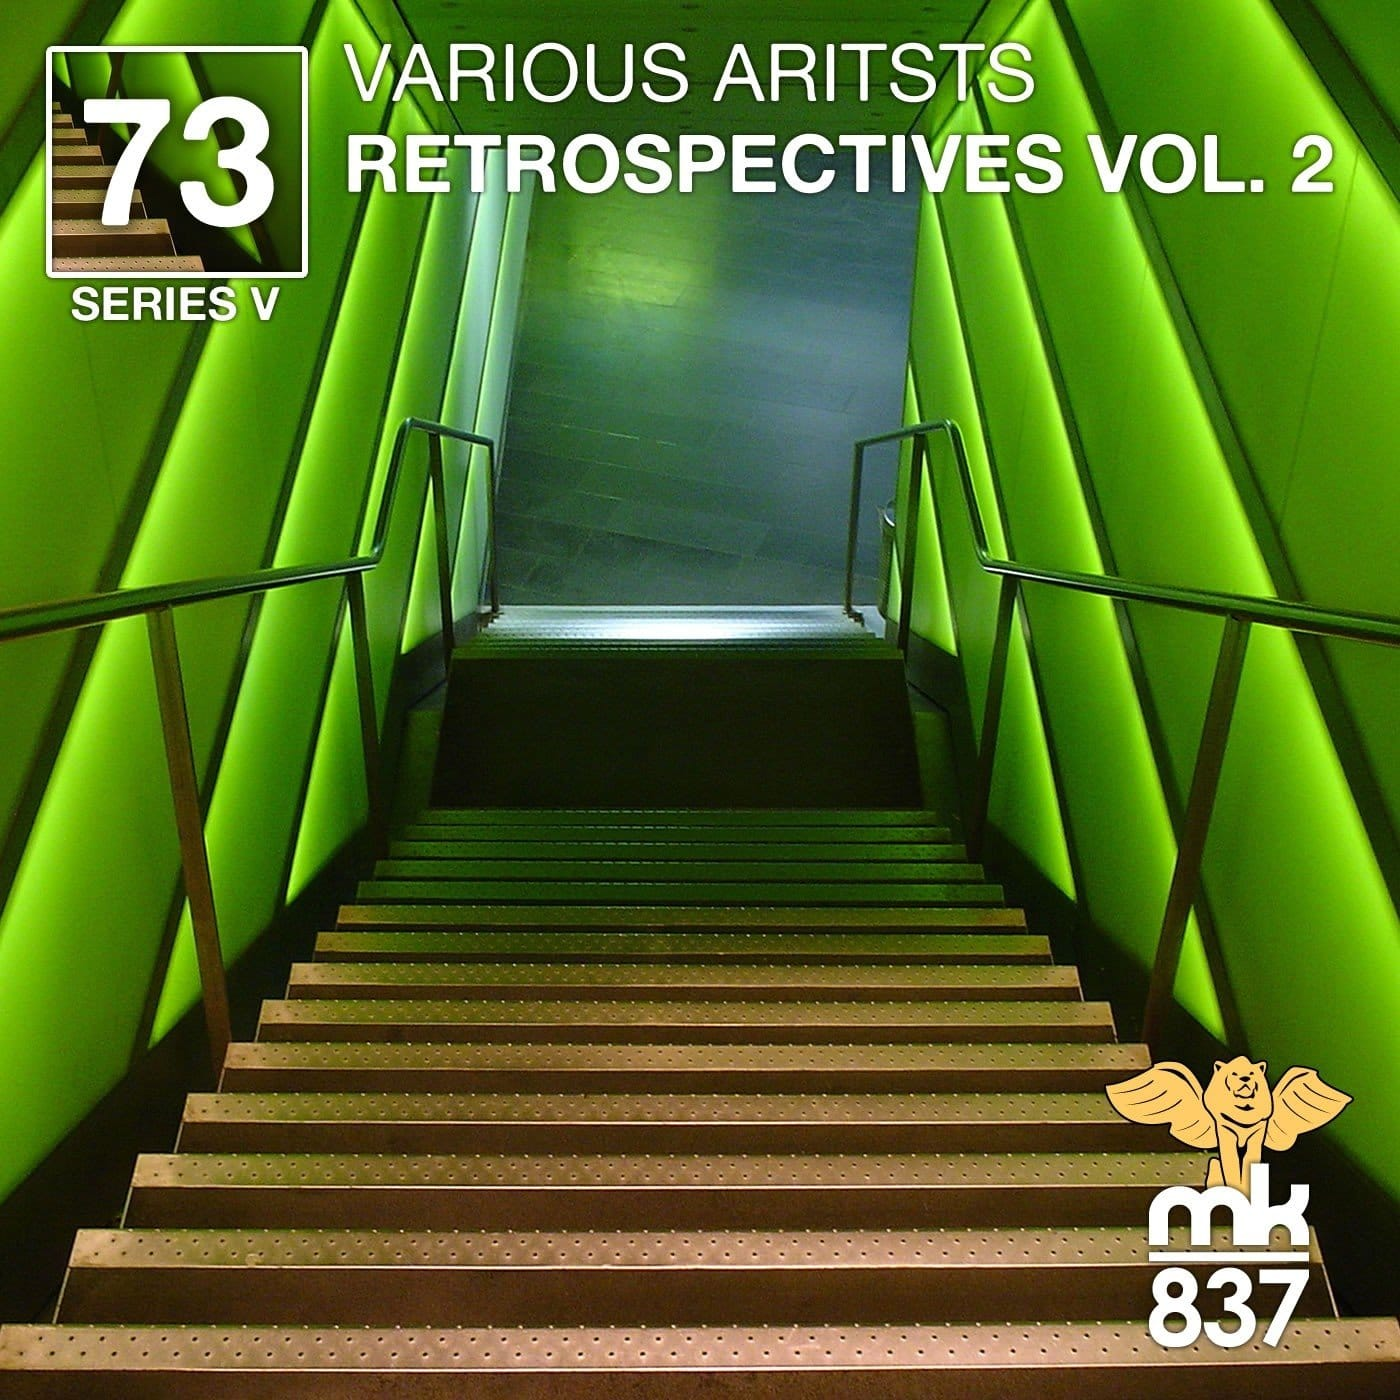 Various Artists Retrospectives Vol 2